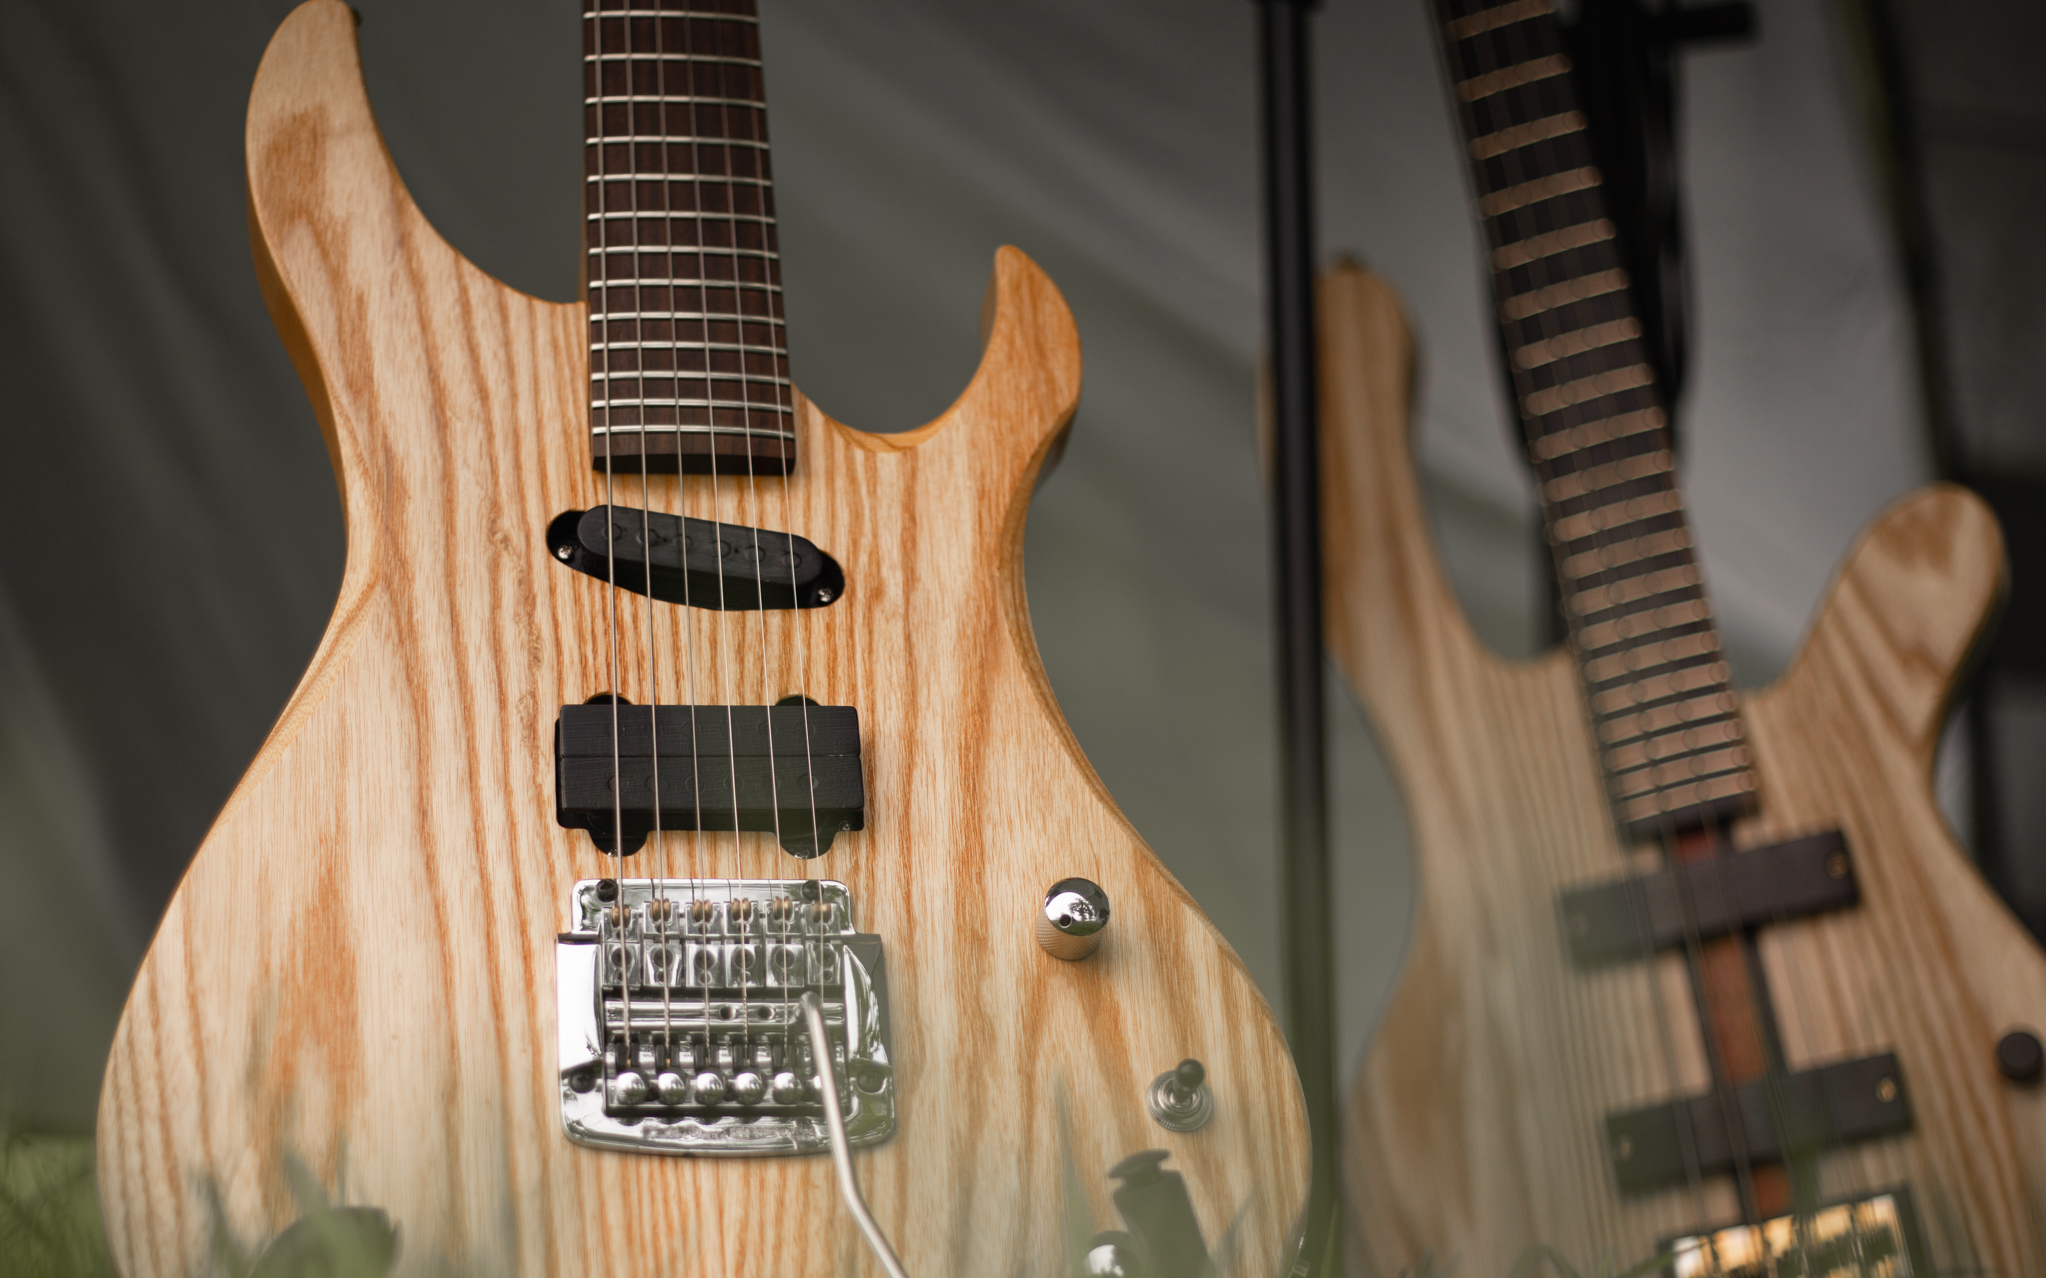 Handcrafted bespoke guitars